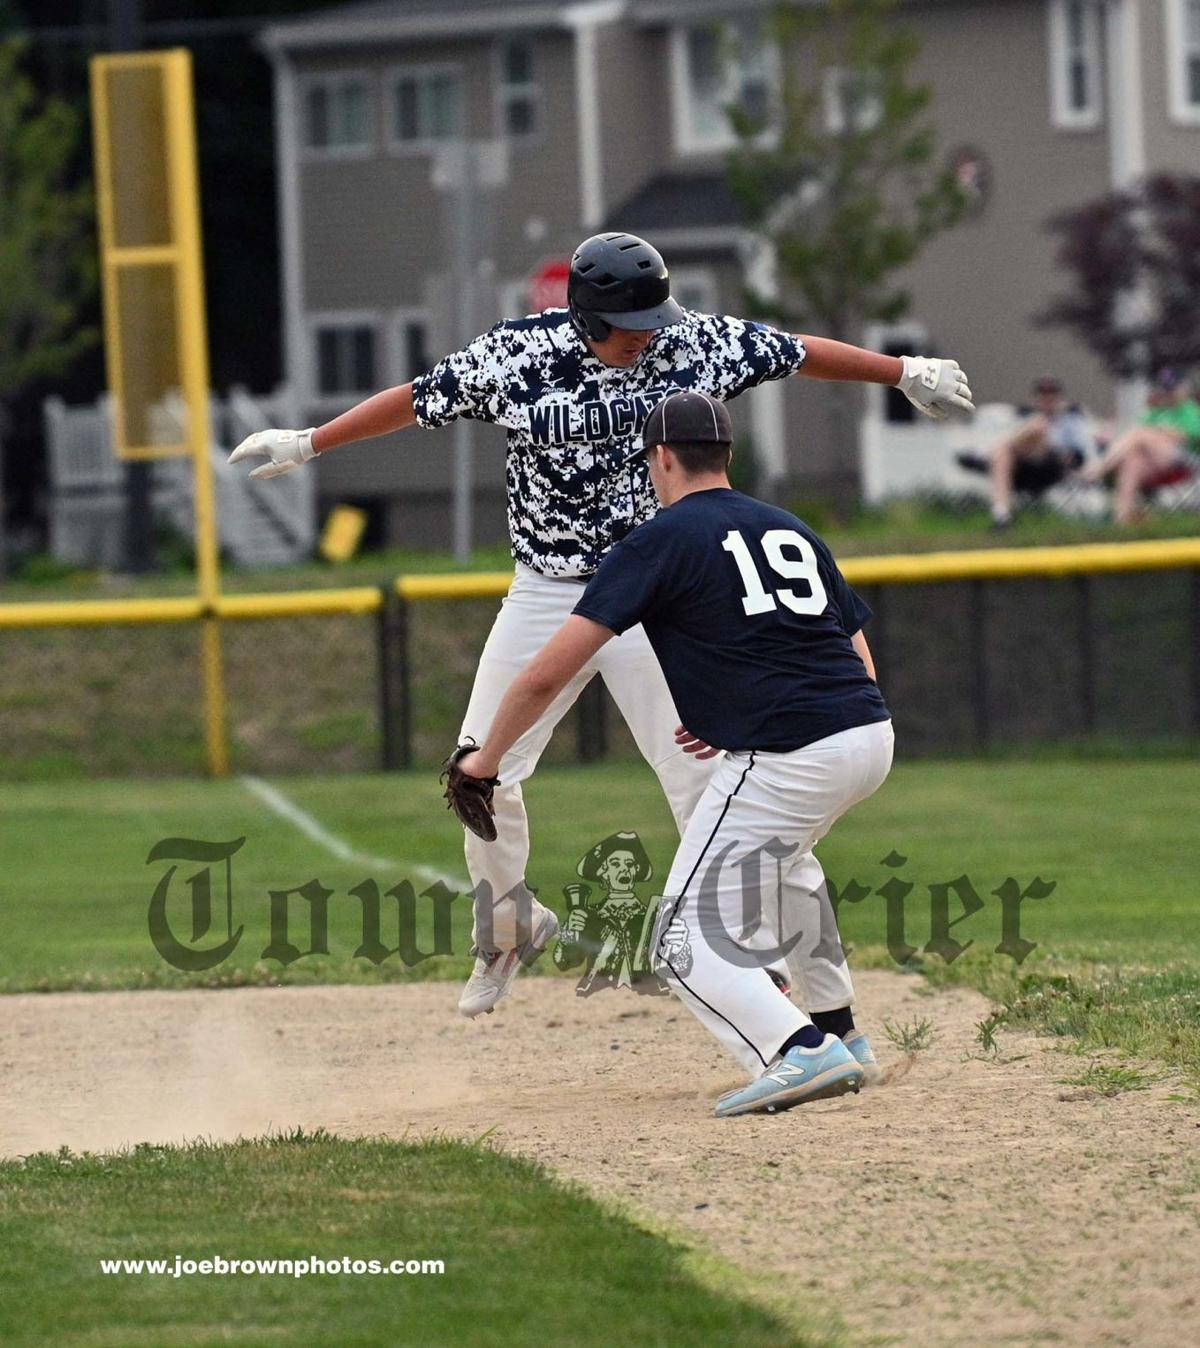 Wilmington Northeast player Vinnie Scalfani gets back to first base